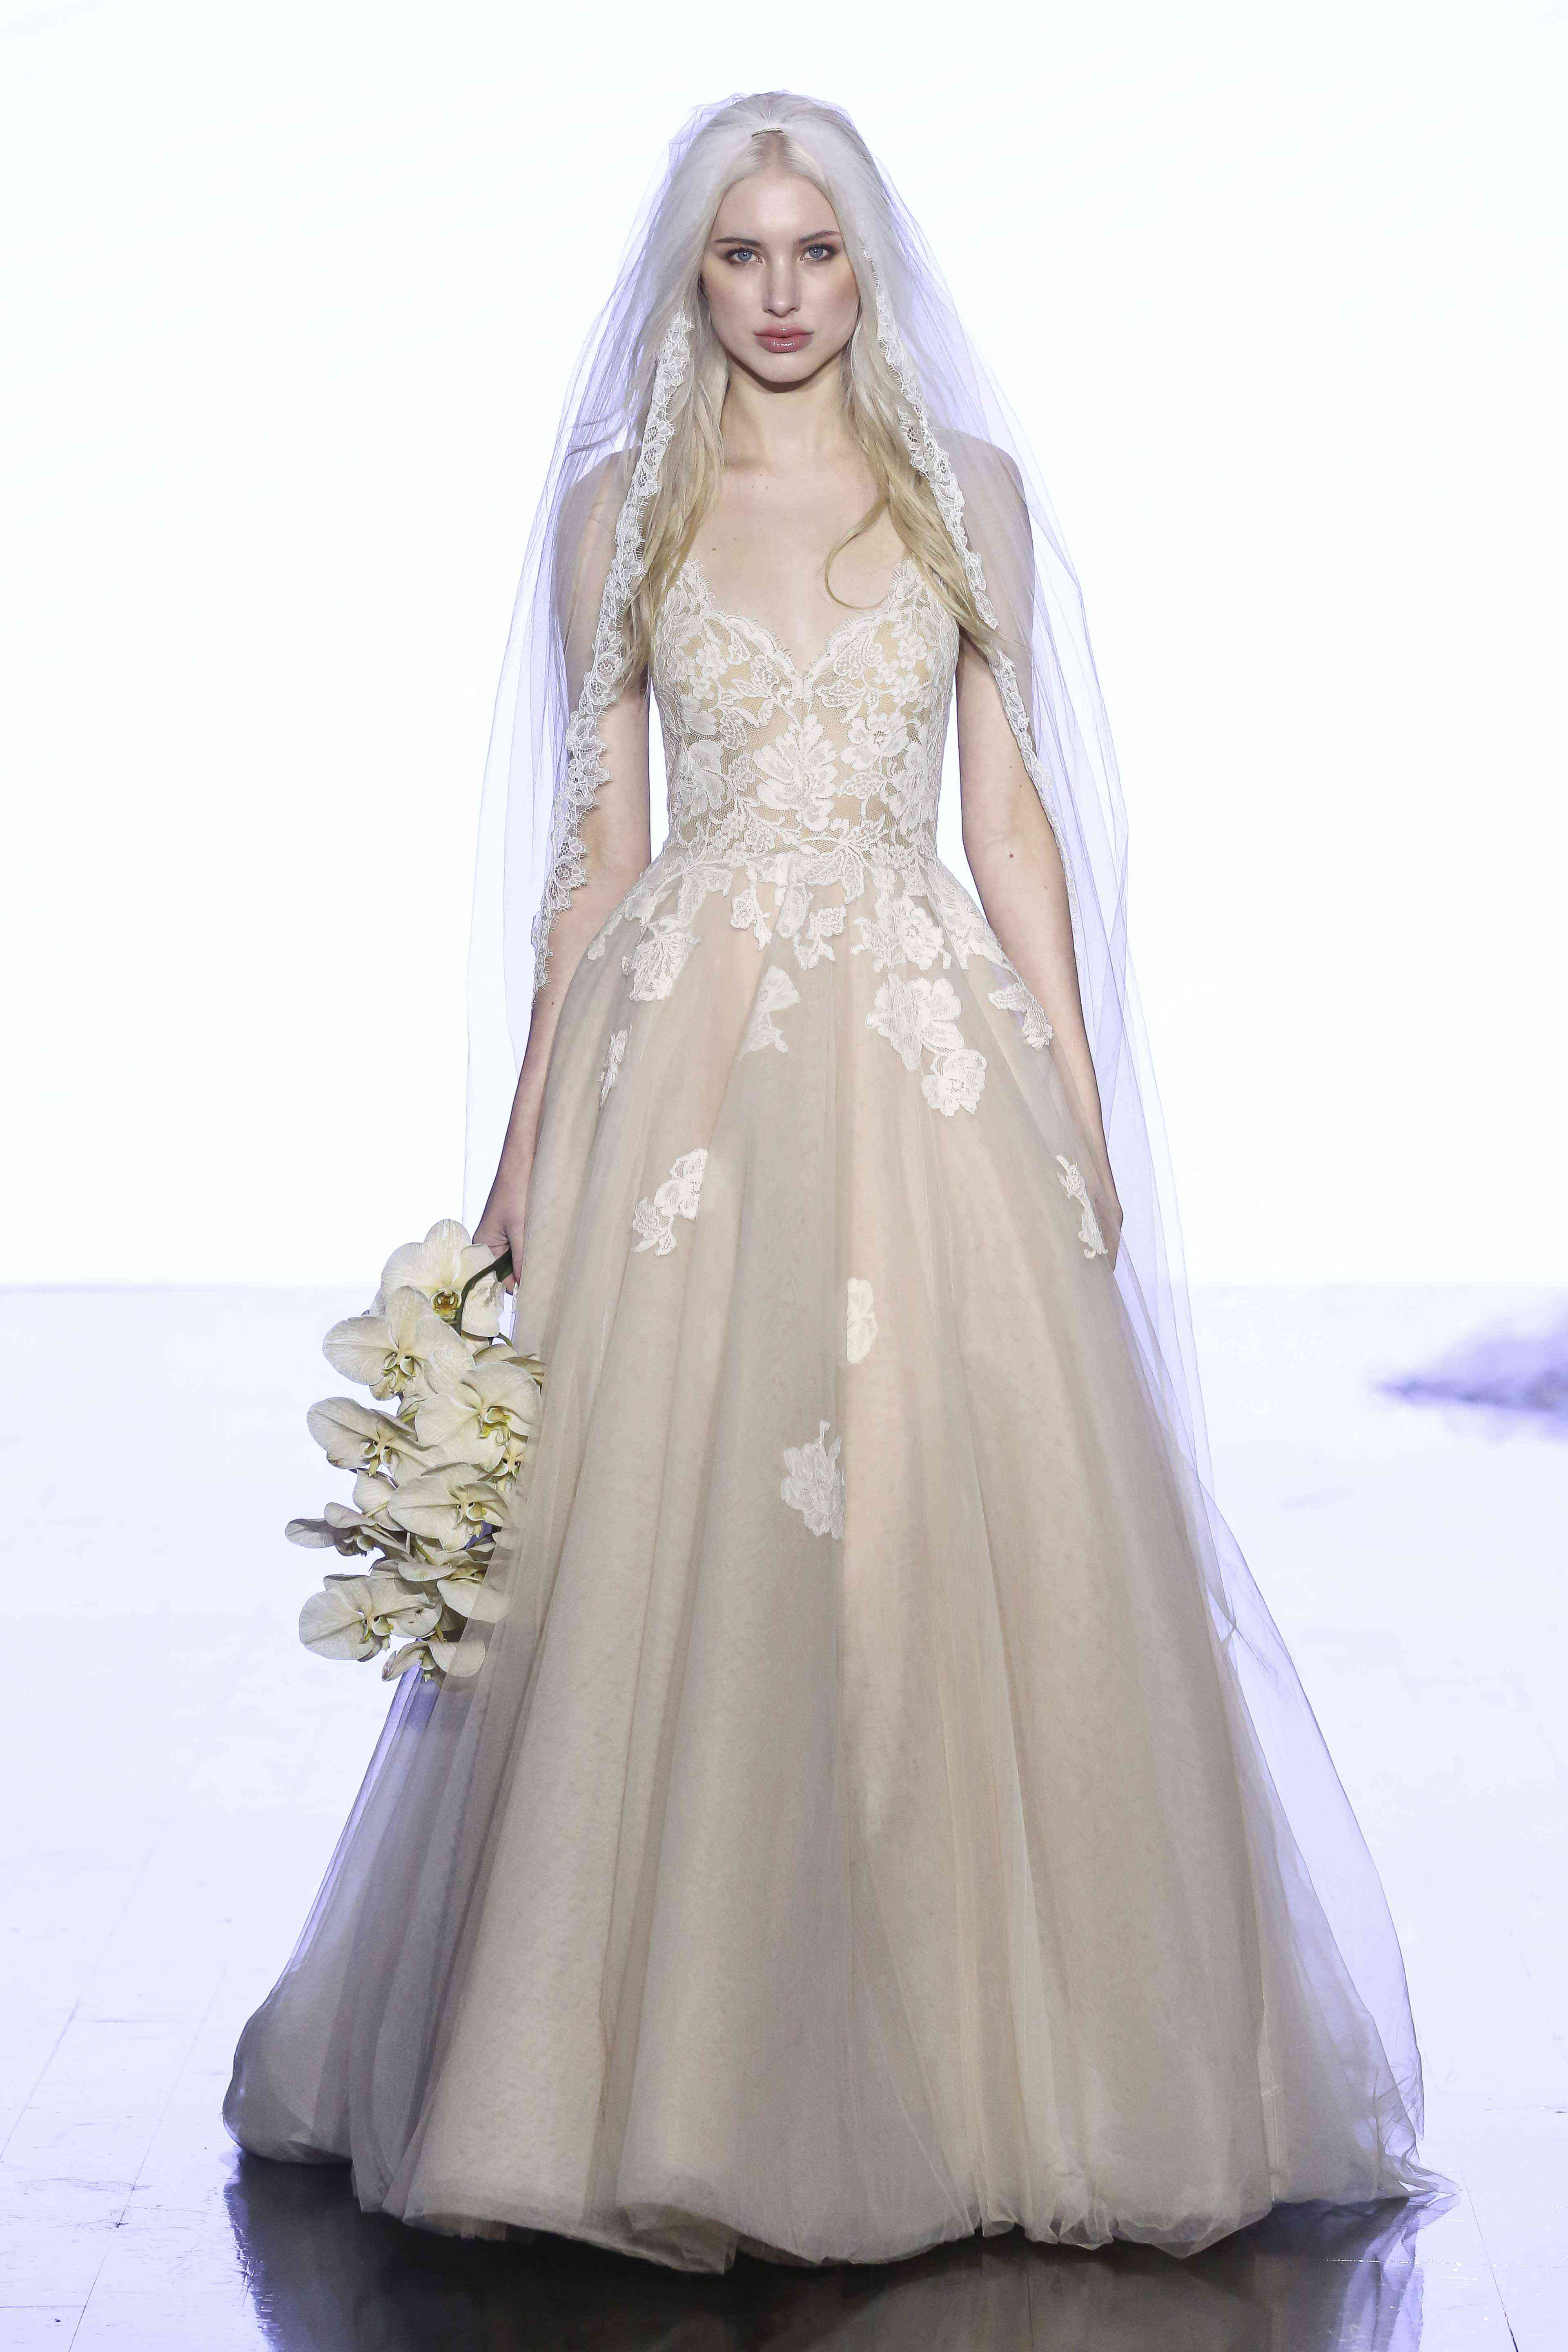 Model in off-white ballgown with a tulle skirt and a lace V-neck bodice